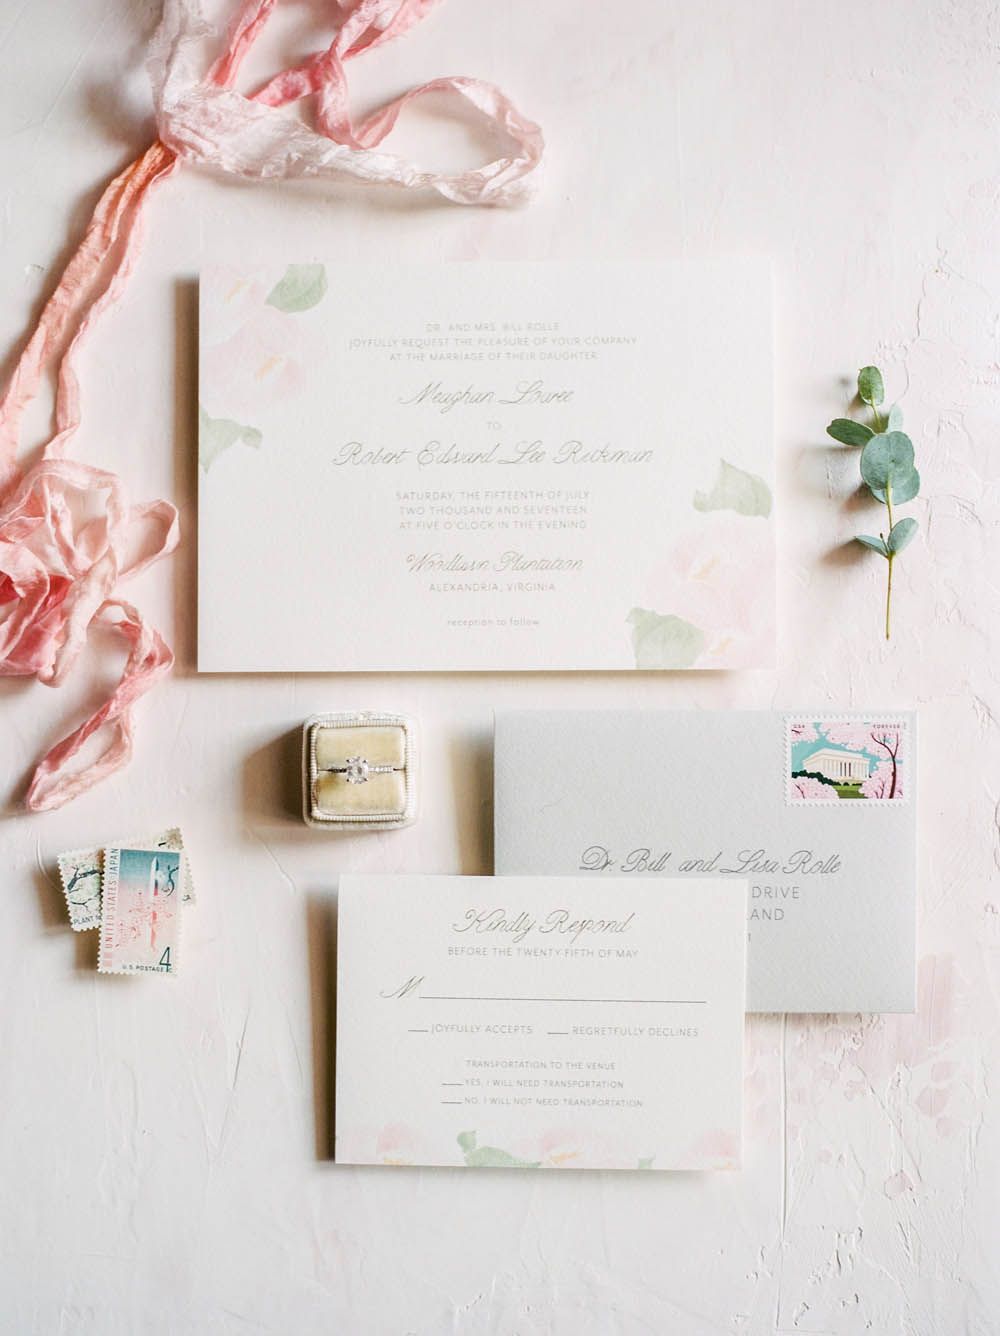 watercolor-floral-wedding-invitation-third-clover-paper.jpg